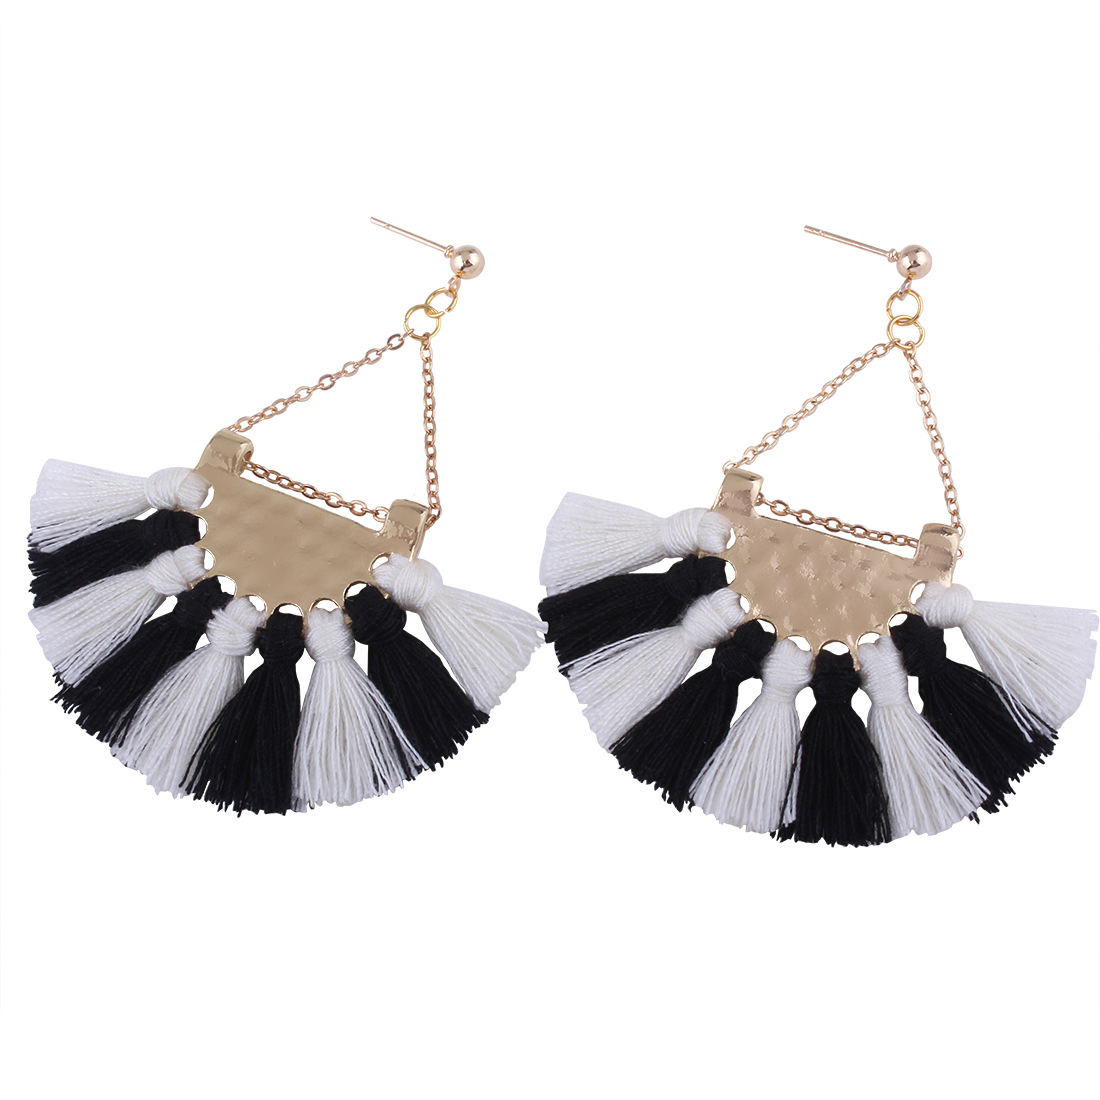 Occident and the United States alloy plating earring (Black and White)NHNMD3279-Black and White